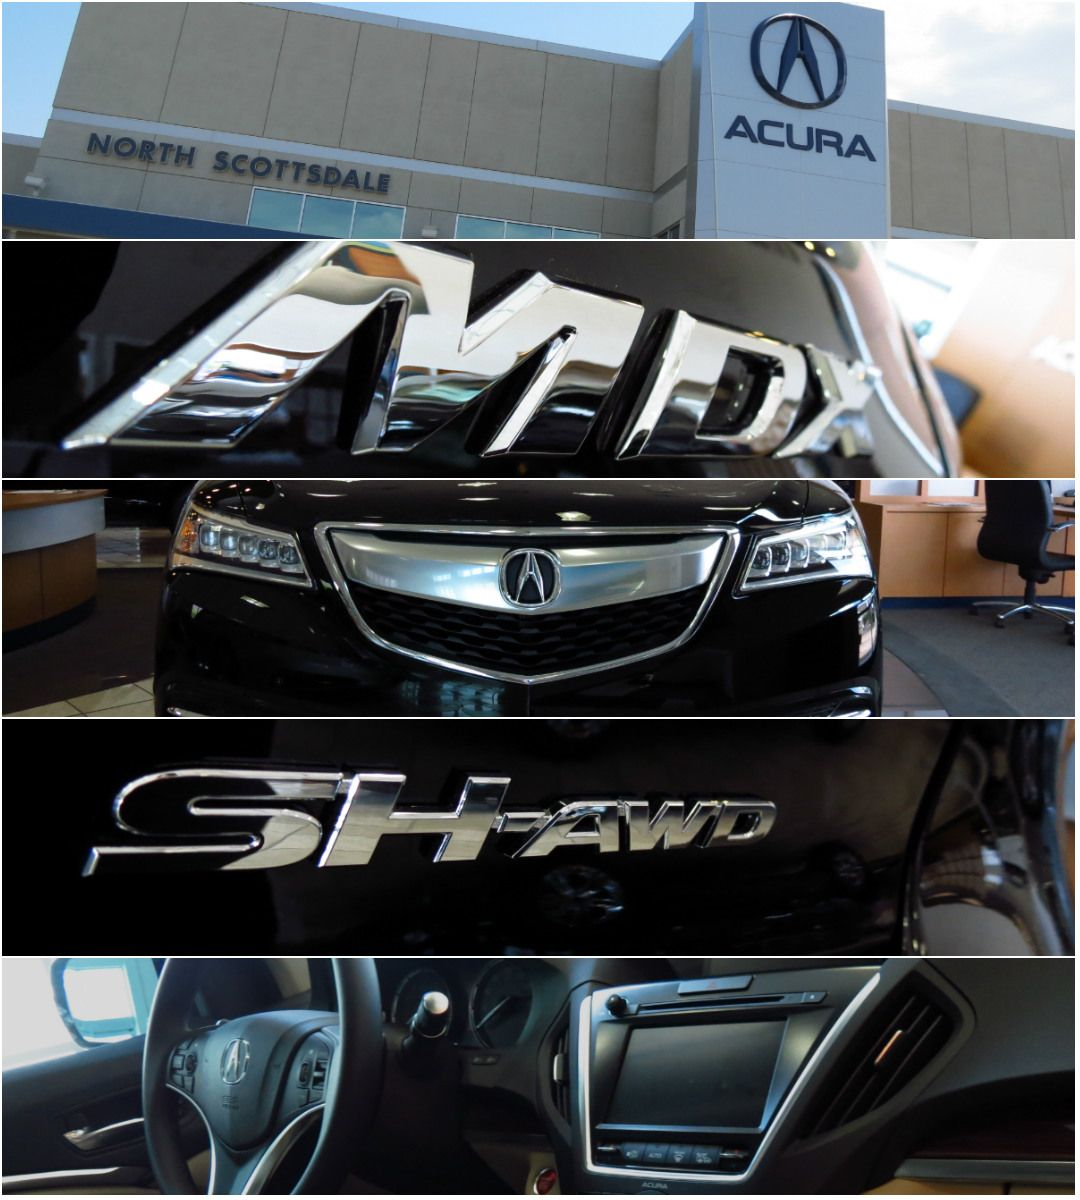 2014 #Acura #MDX @Acura North Scottsdale